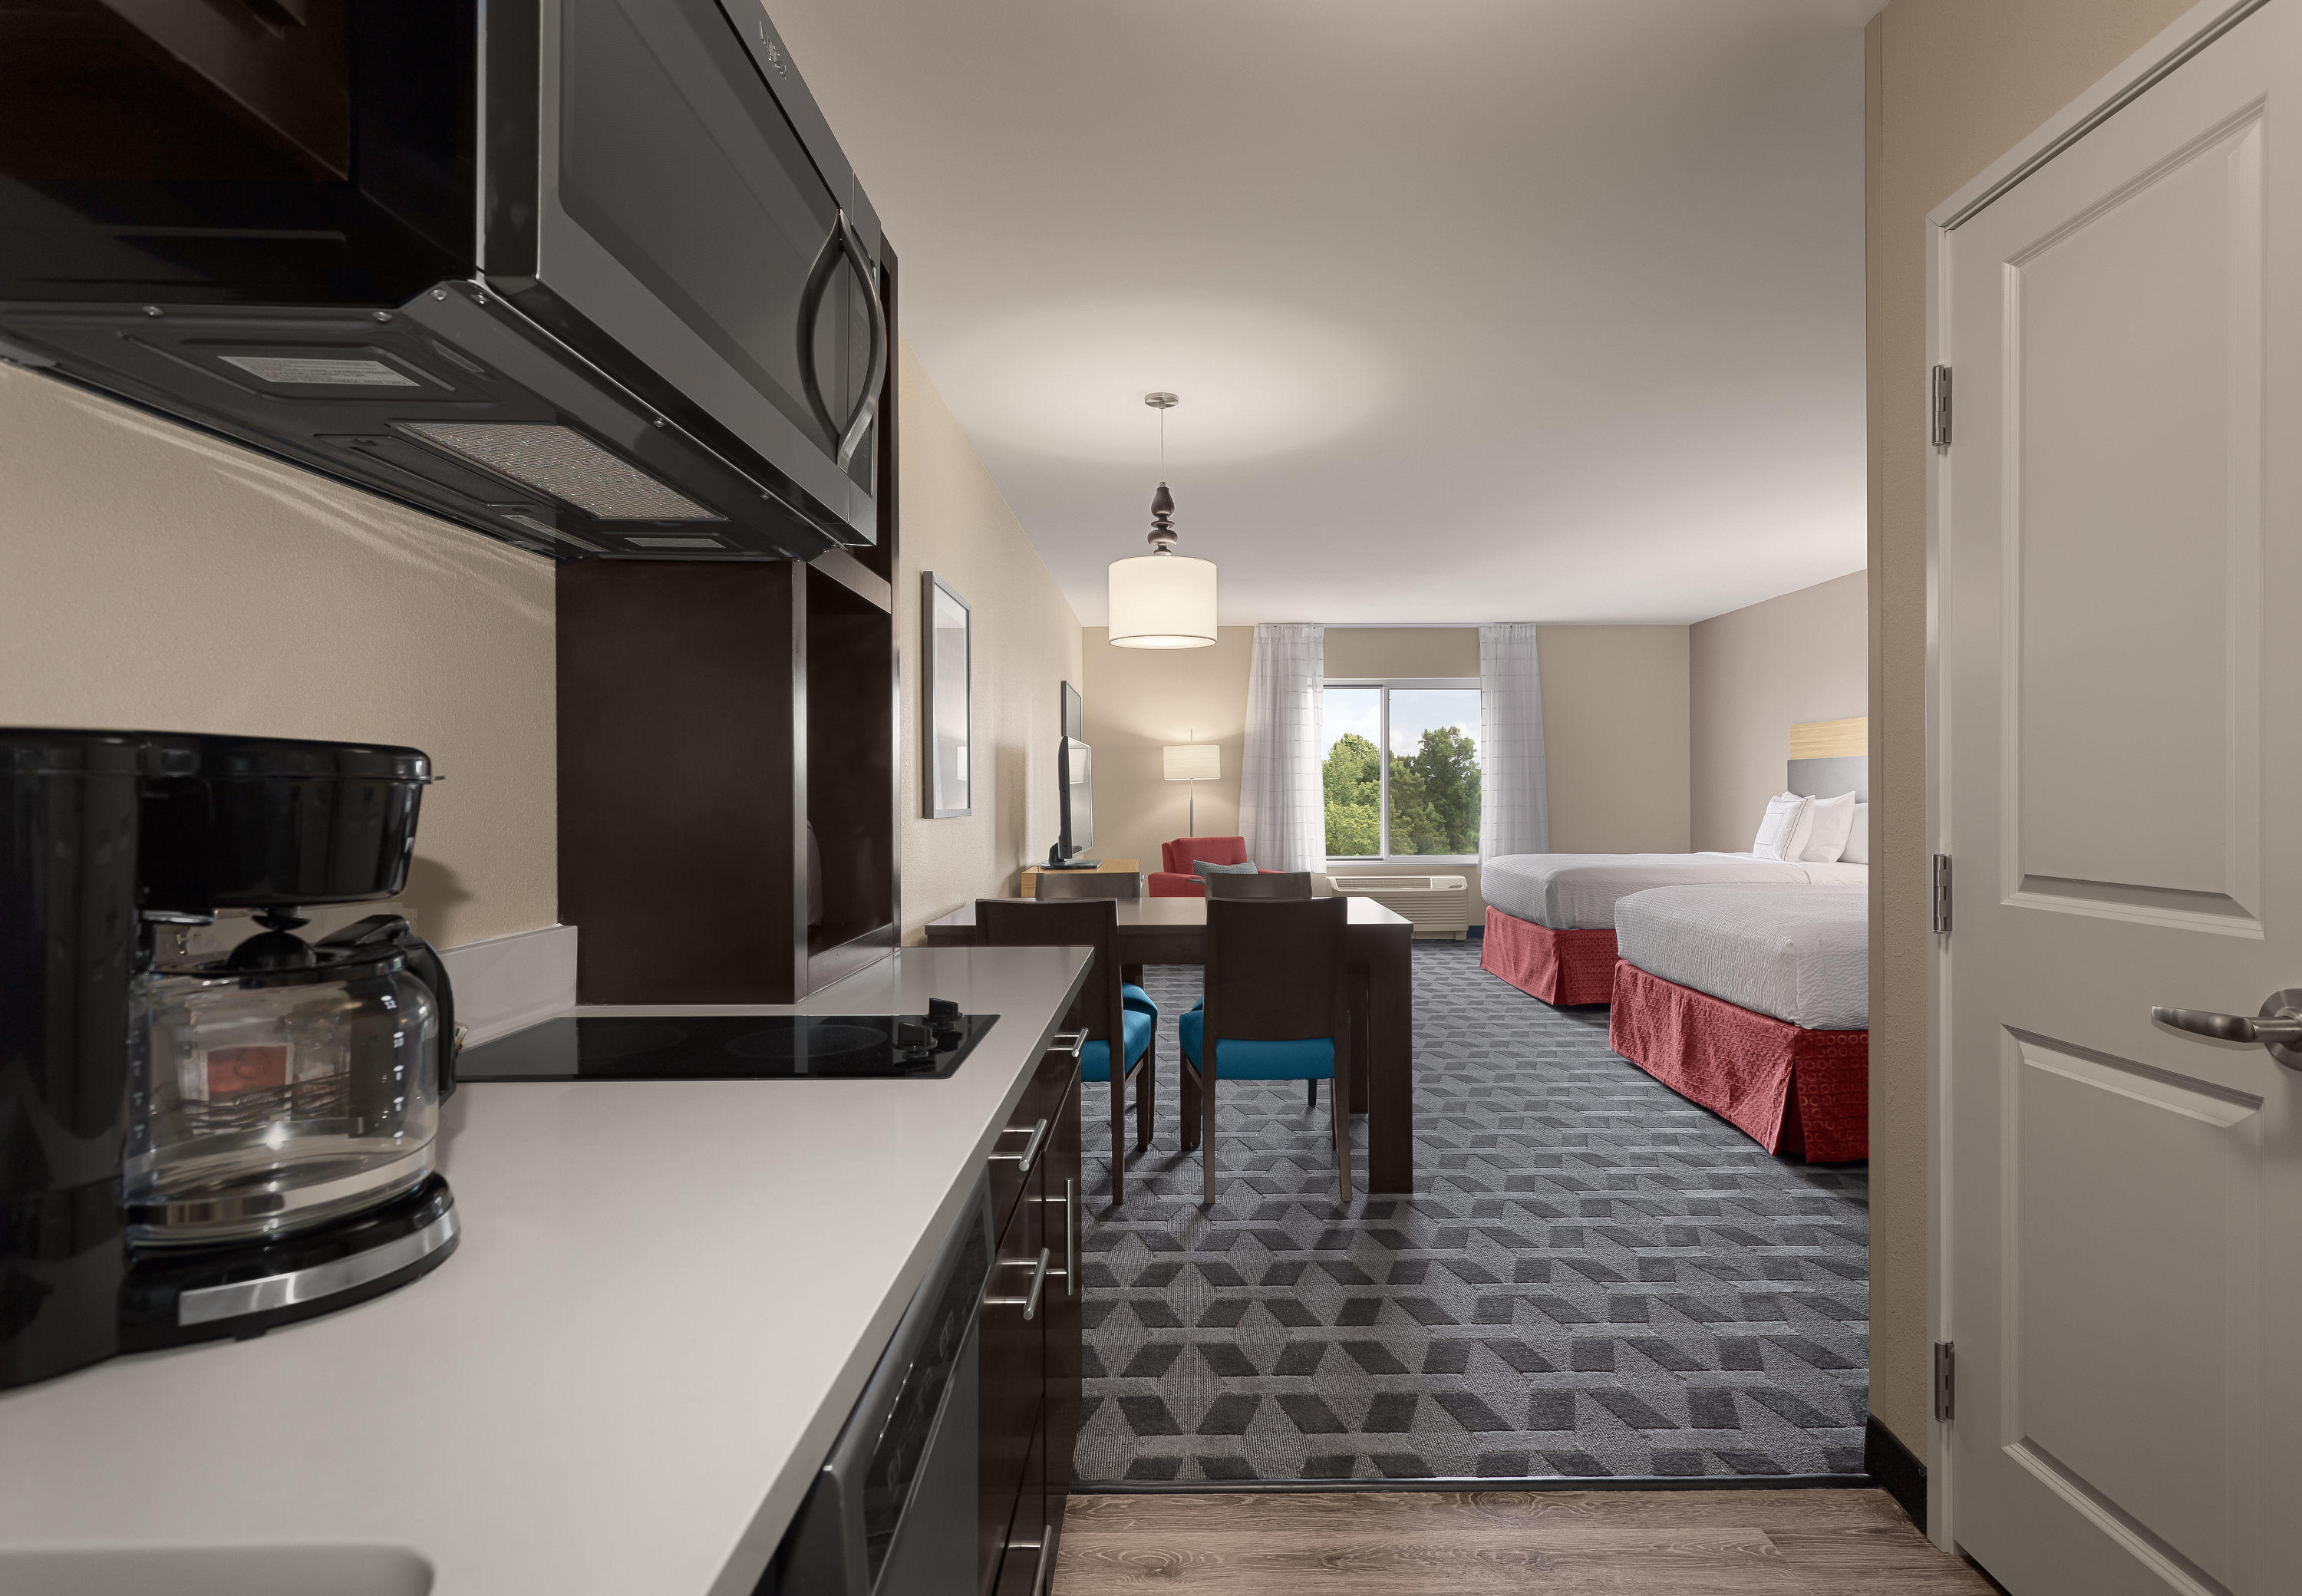 TownePlace Suites by Marriott Charleston Mt. Pleasant image 6